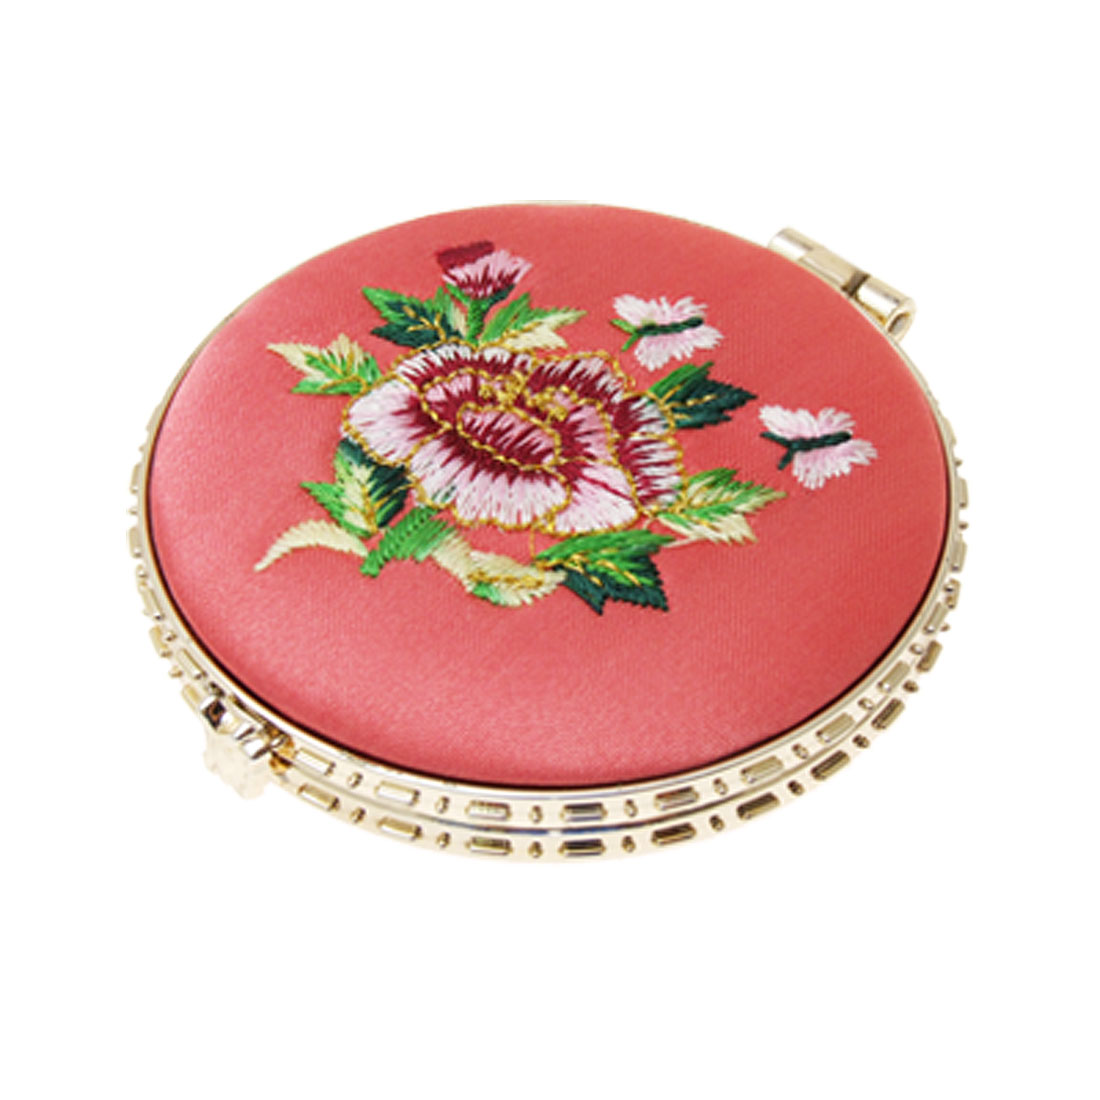 Salmon Pink Round Folded Lady Girl Makeup Decor Mirror